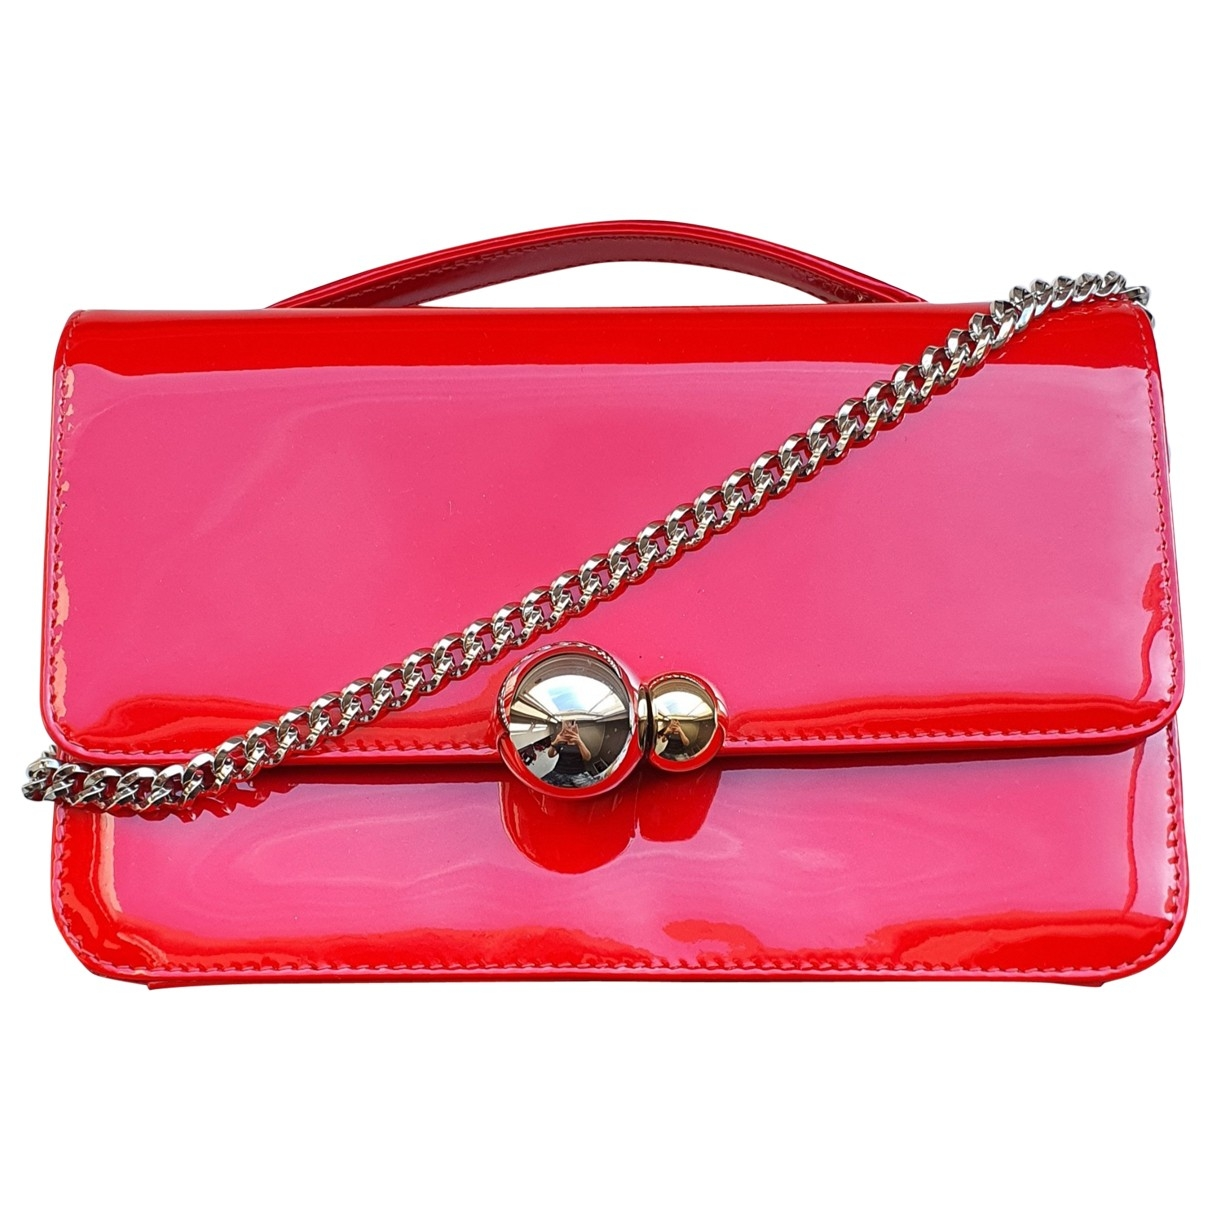 Dior \N Red Patent leather handbag for Women \N